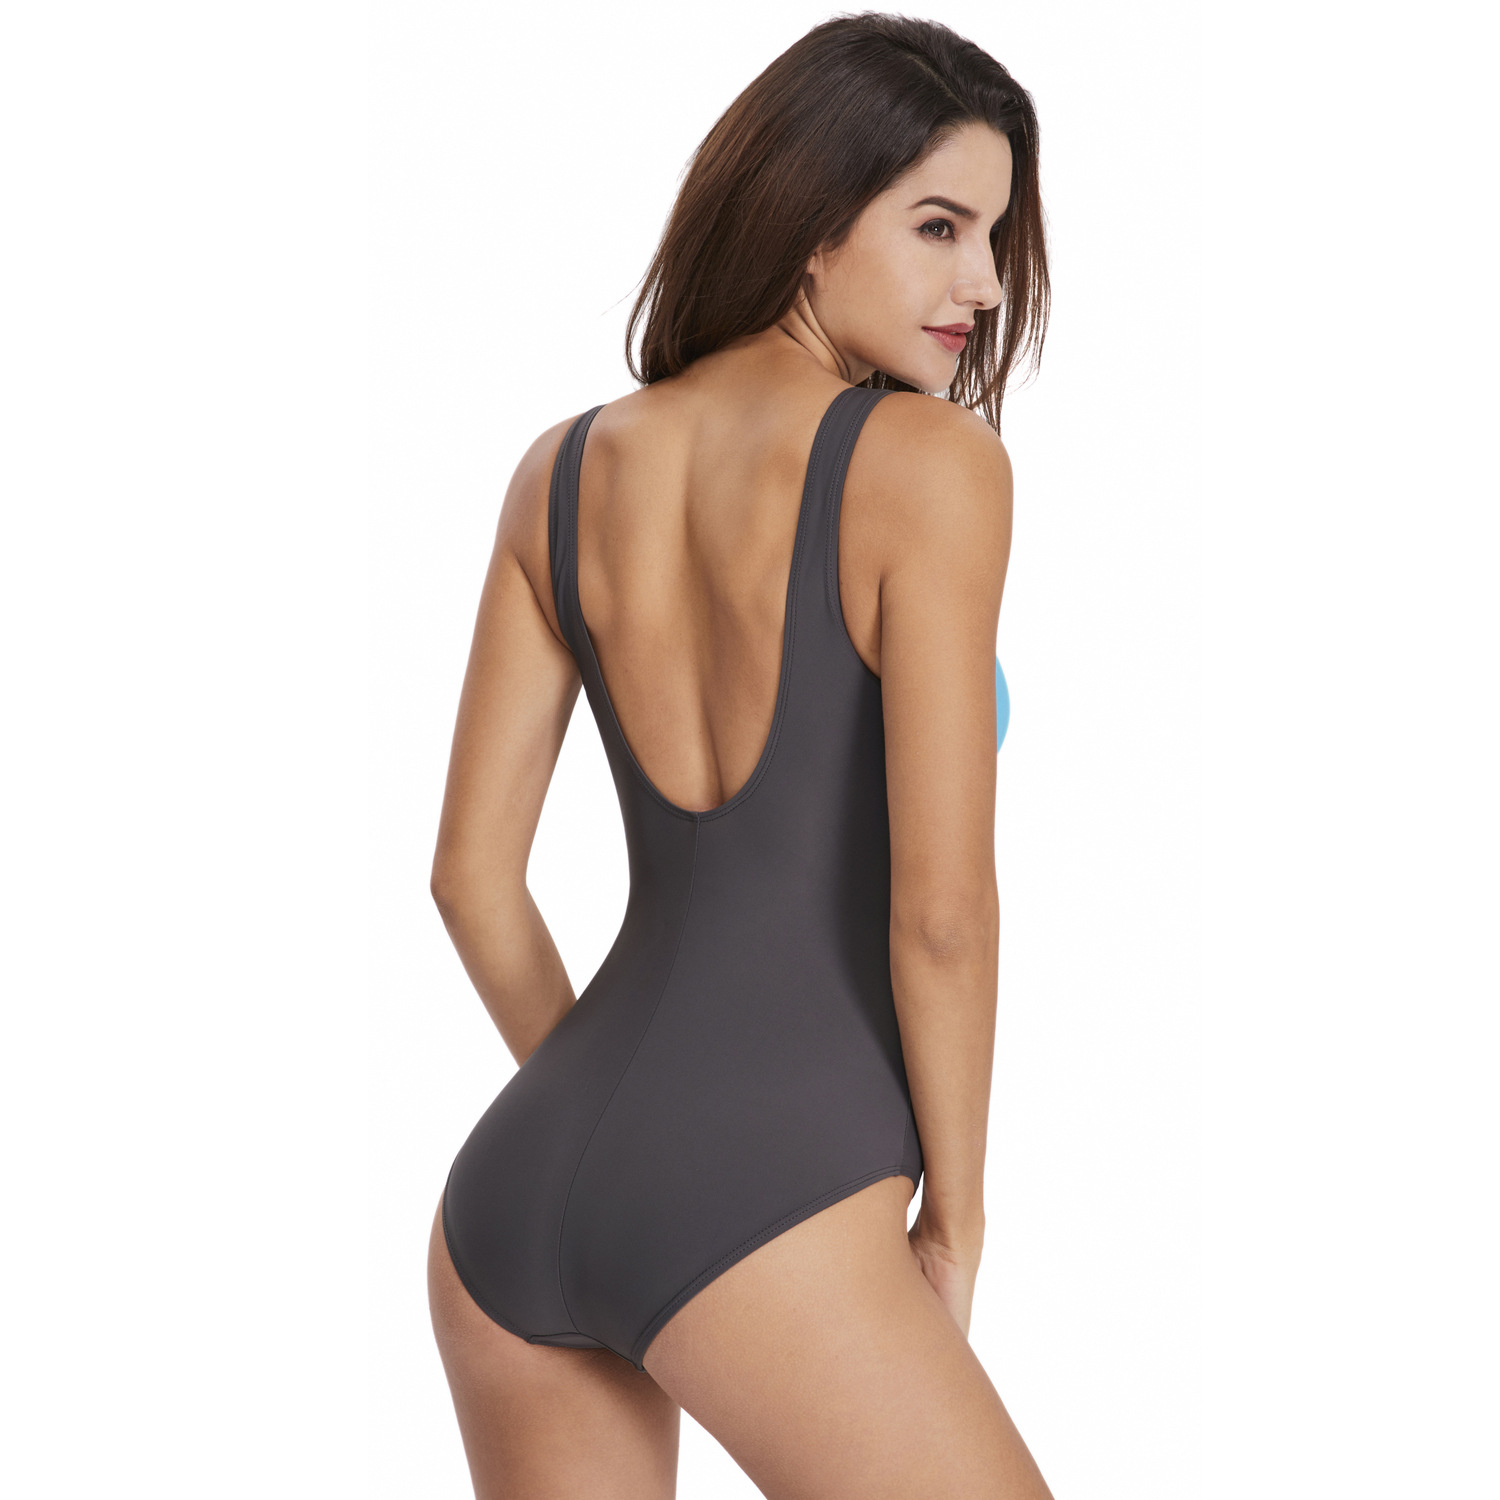 2020 New Swimwear Swimsuit sexy professional triangle sports color matching one-piece swimsuit women